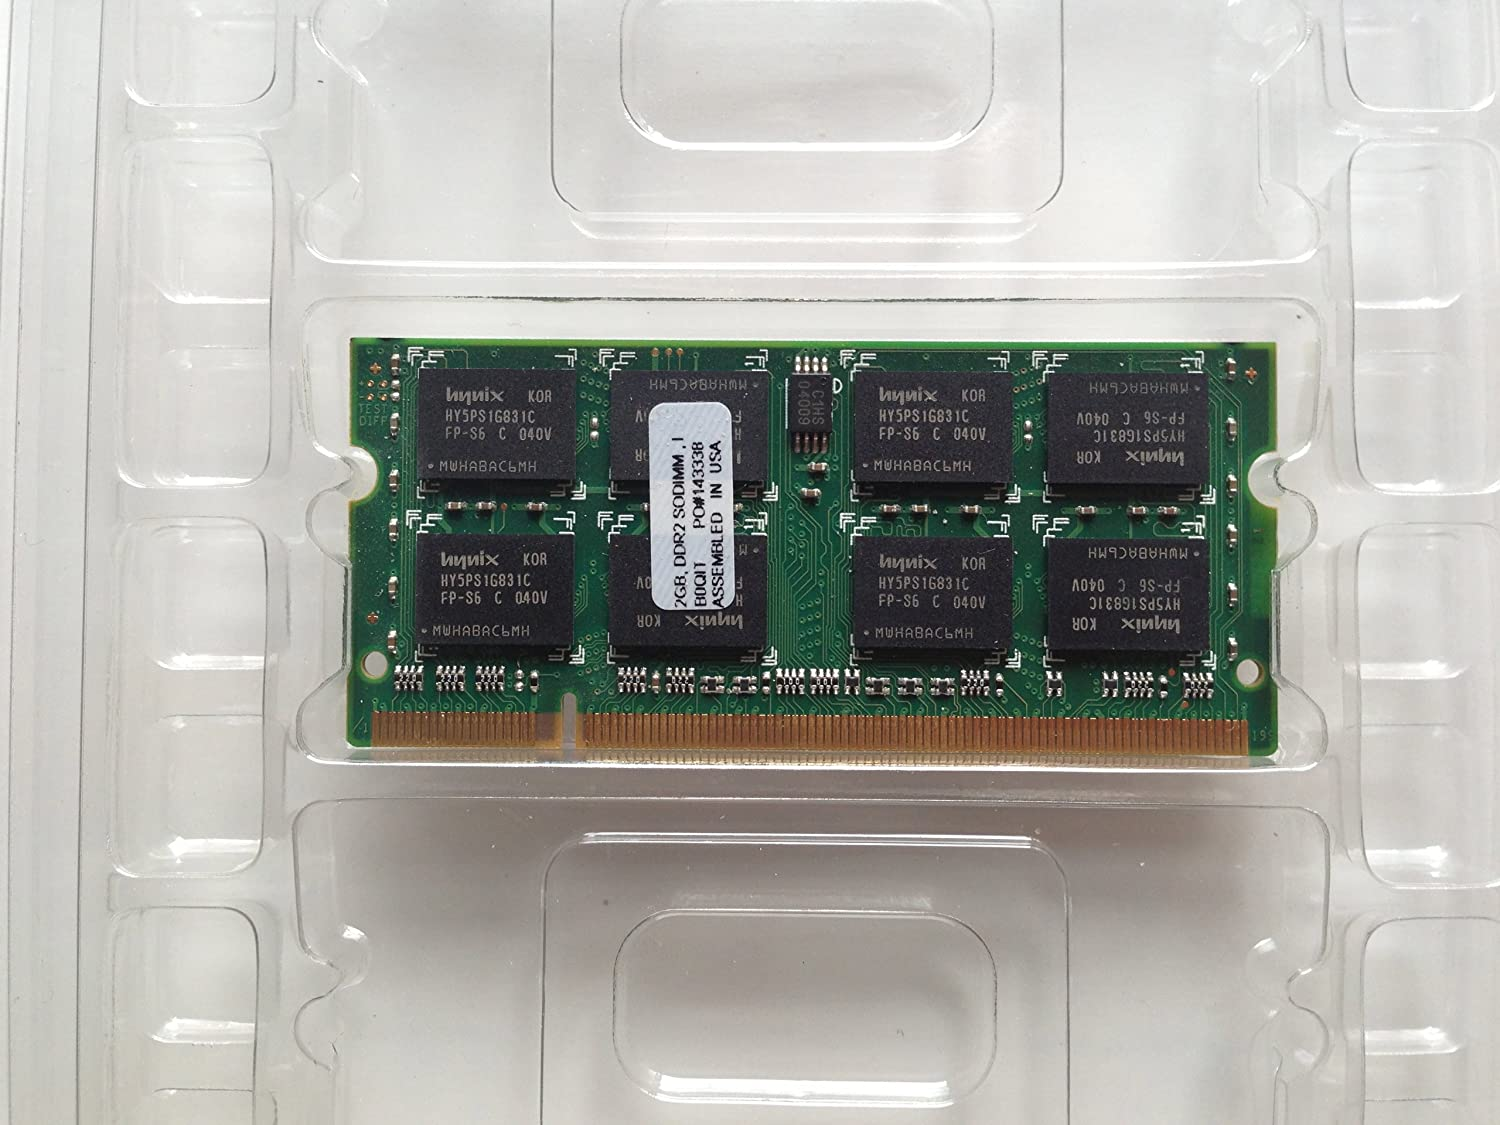 20gb 2048mb Pc5300 Ddr2 667mhz So Dimm 200 Pin Memory Module At 2gb